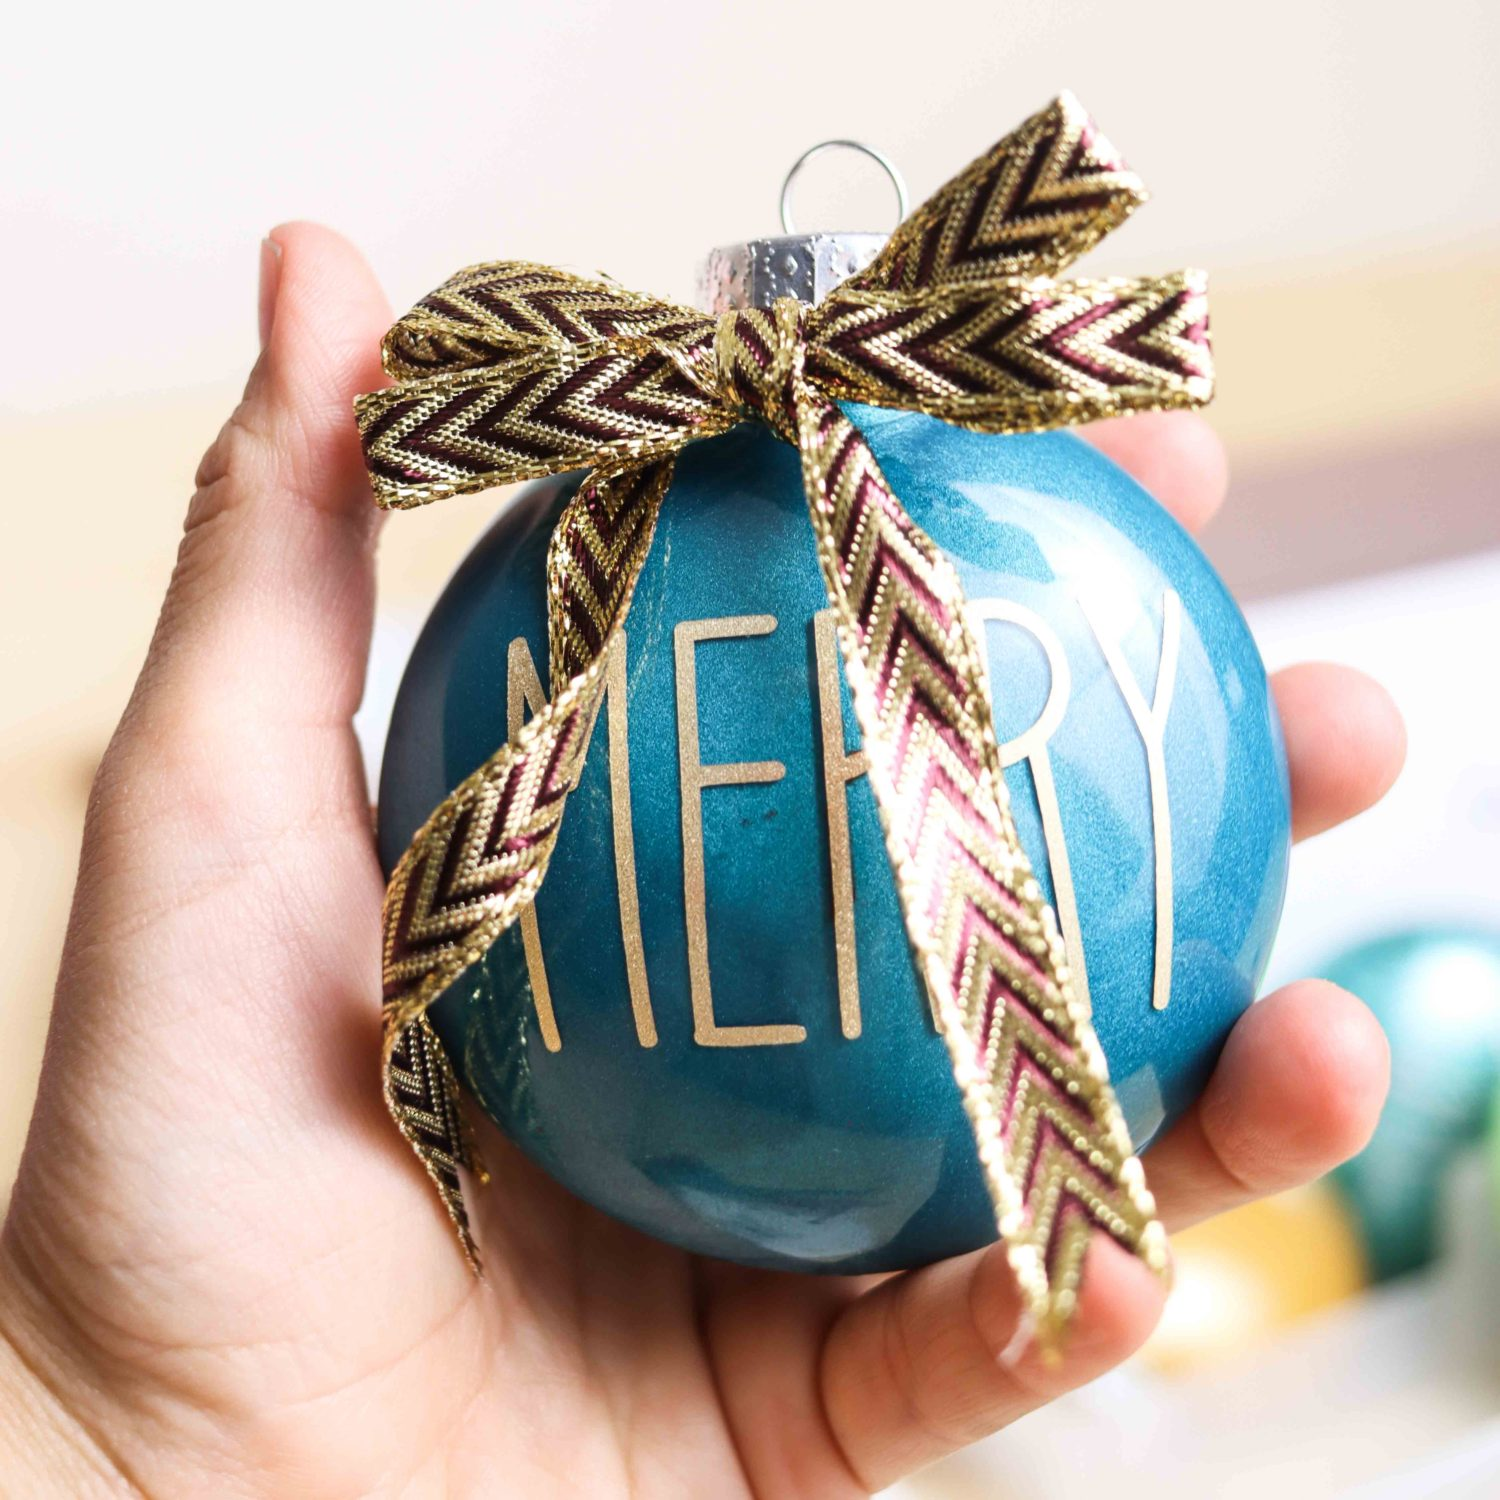 Christmas Ornament made with teal metallic pain and gold vinyl